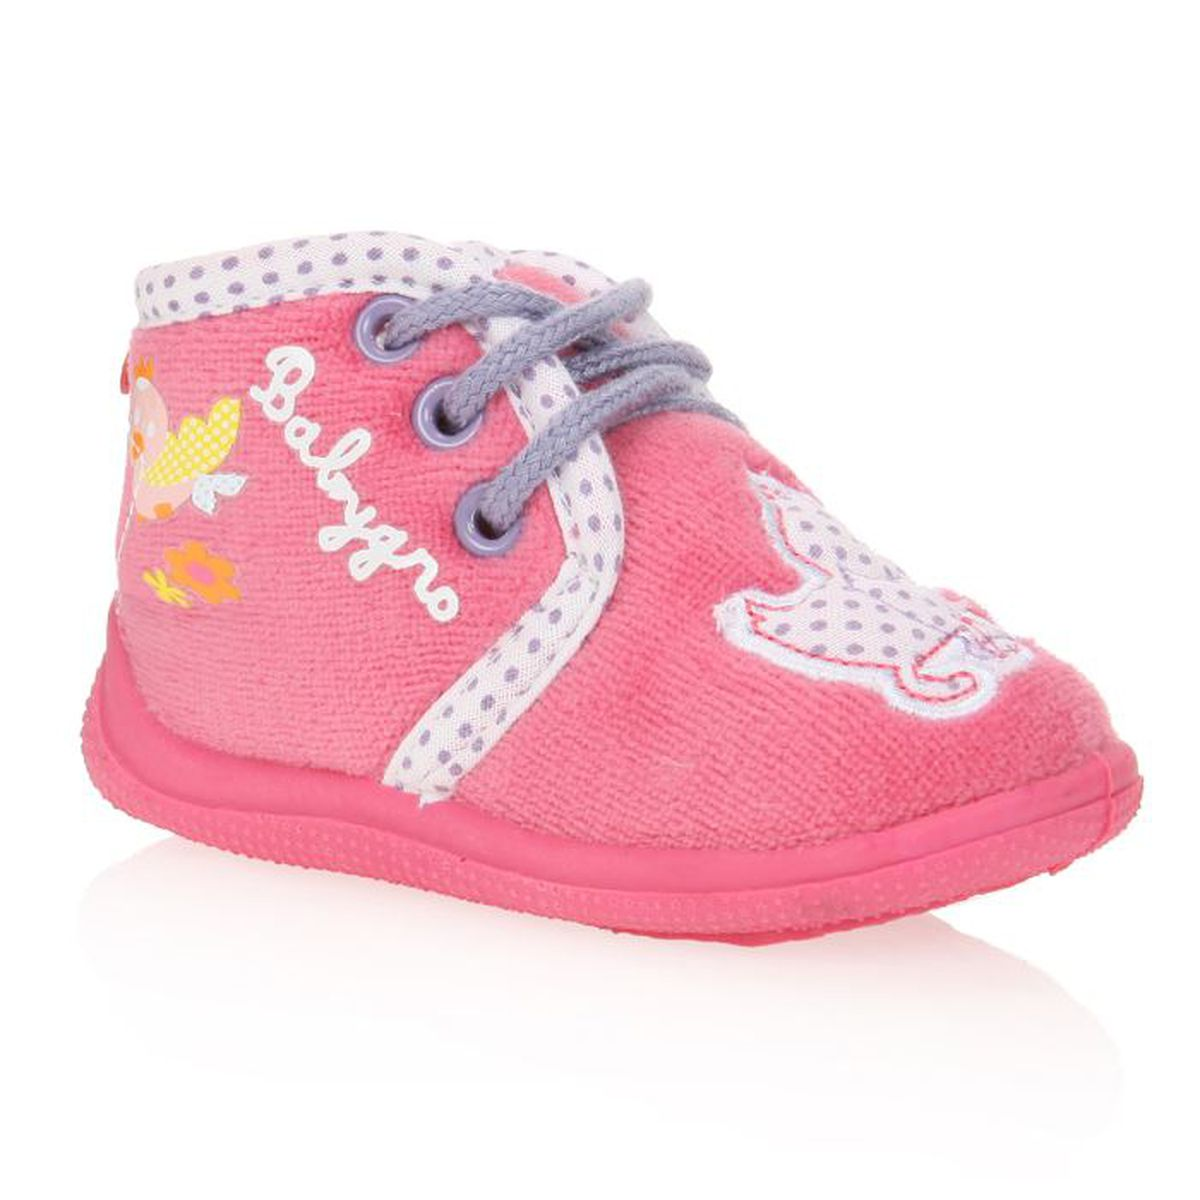 babygro chaussons lacets calipso b b rose achat vente chausson pantoufle cdiscount. Black Bedroom Furniture Sets. Home Design Ideas